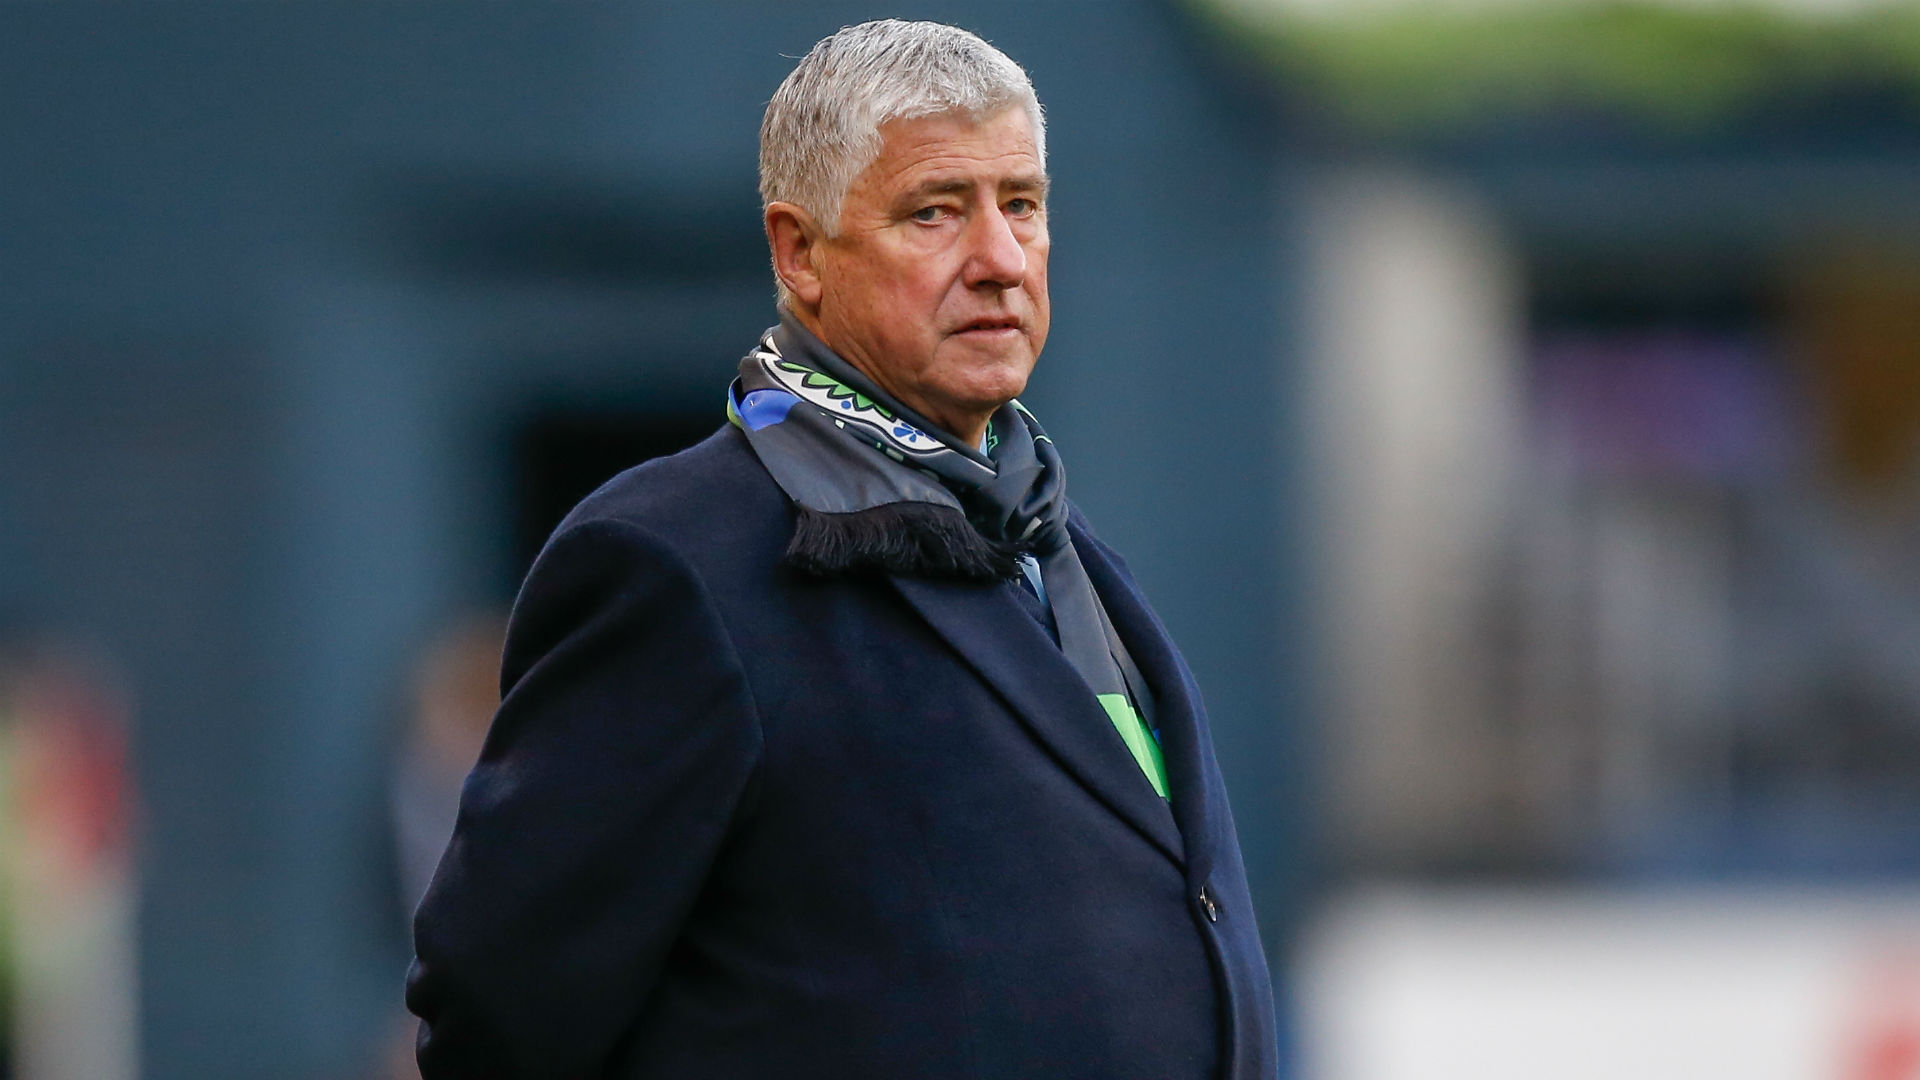 MLS to name Coach of the Year award after Schmid